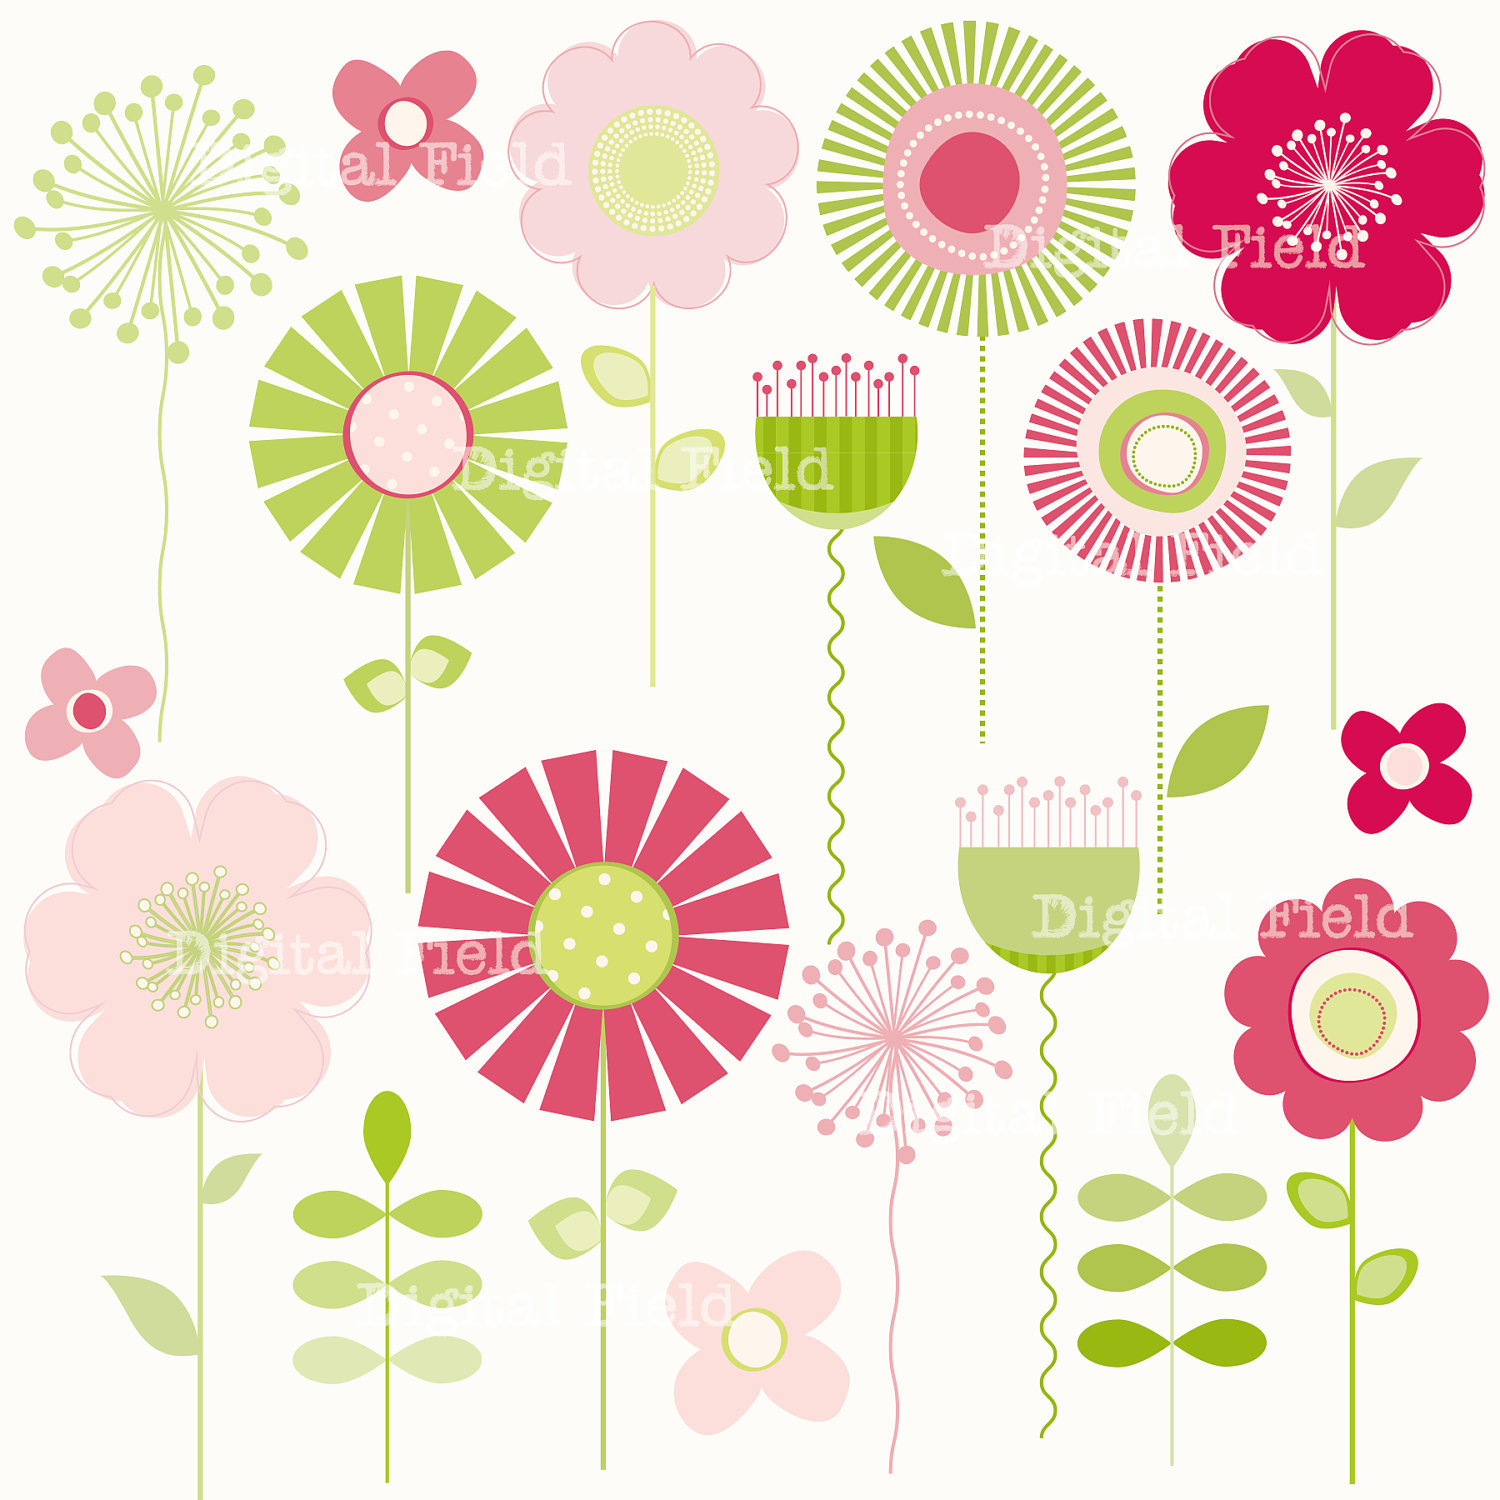 Free Printable Flower Cliparts, Download Free Clip Art, Free Clip - Free Printable Clip Art Flowers